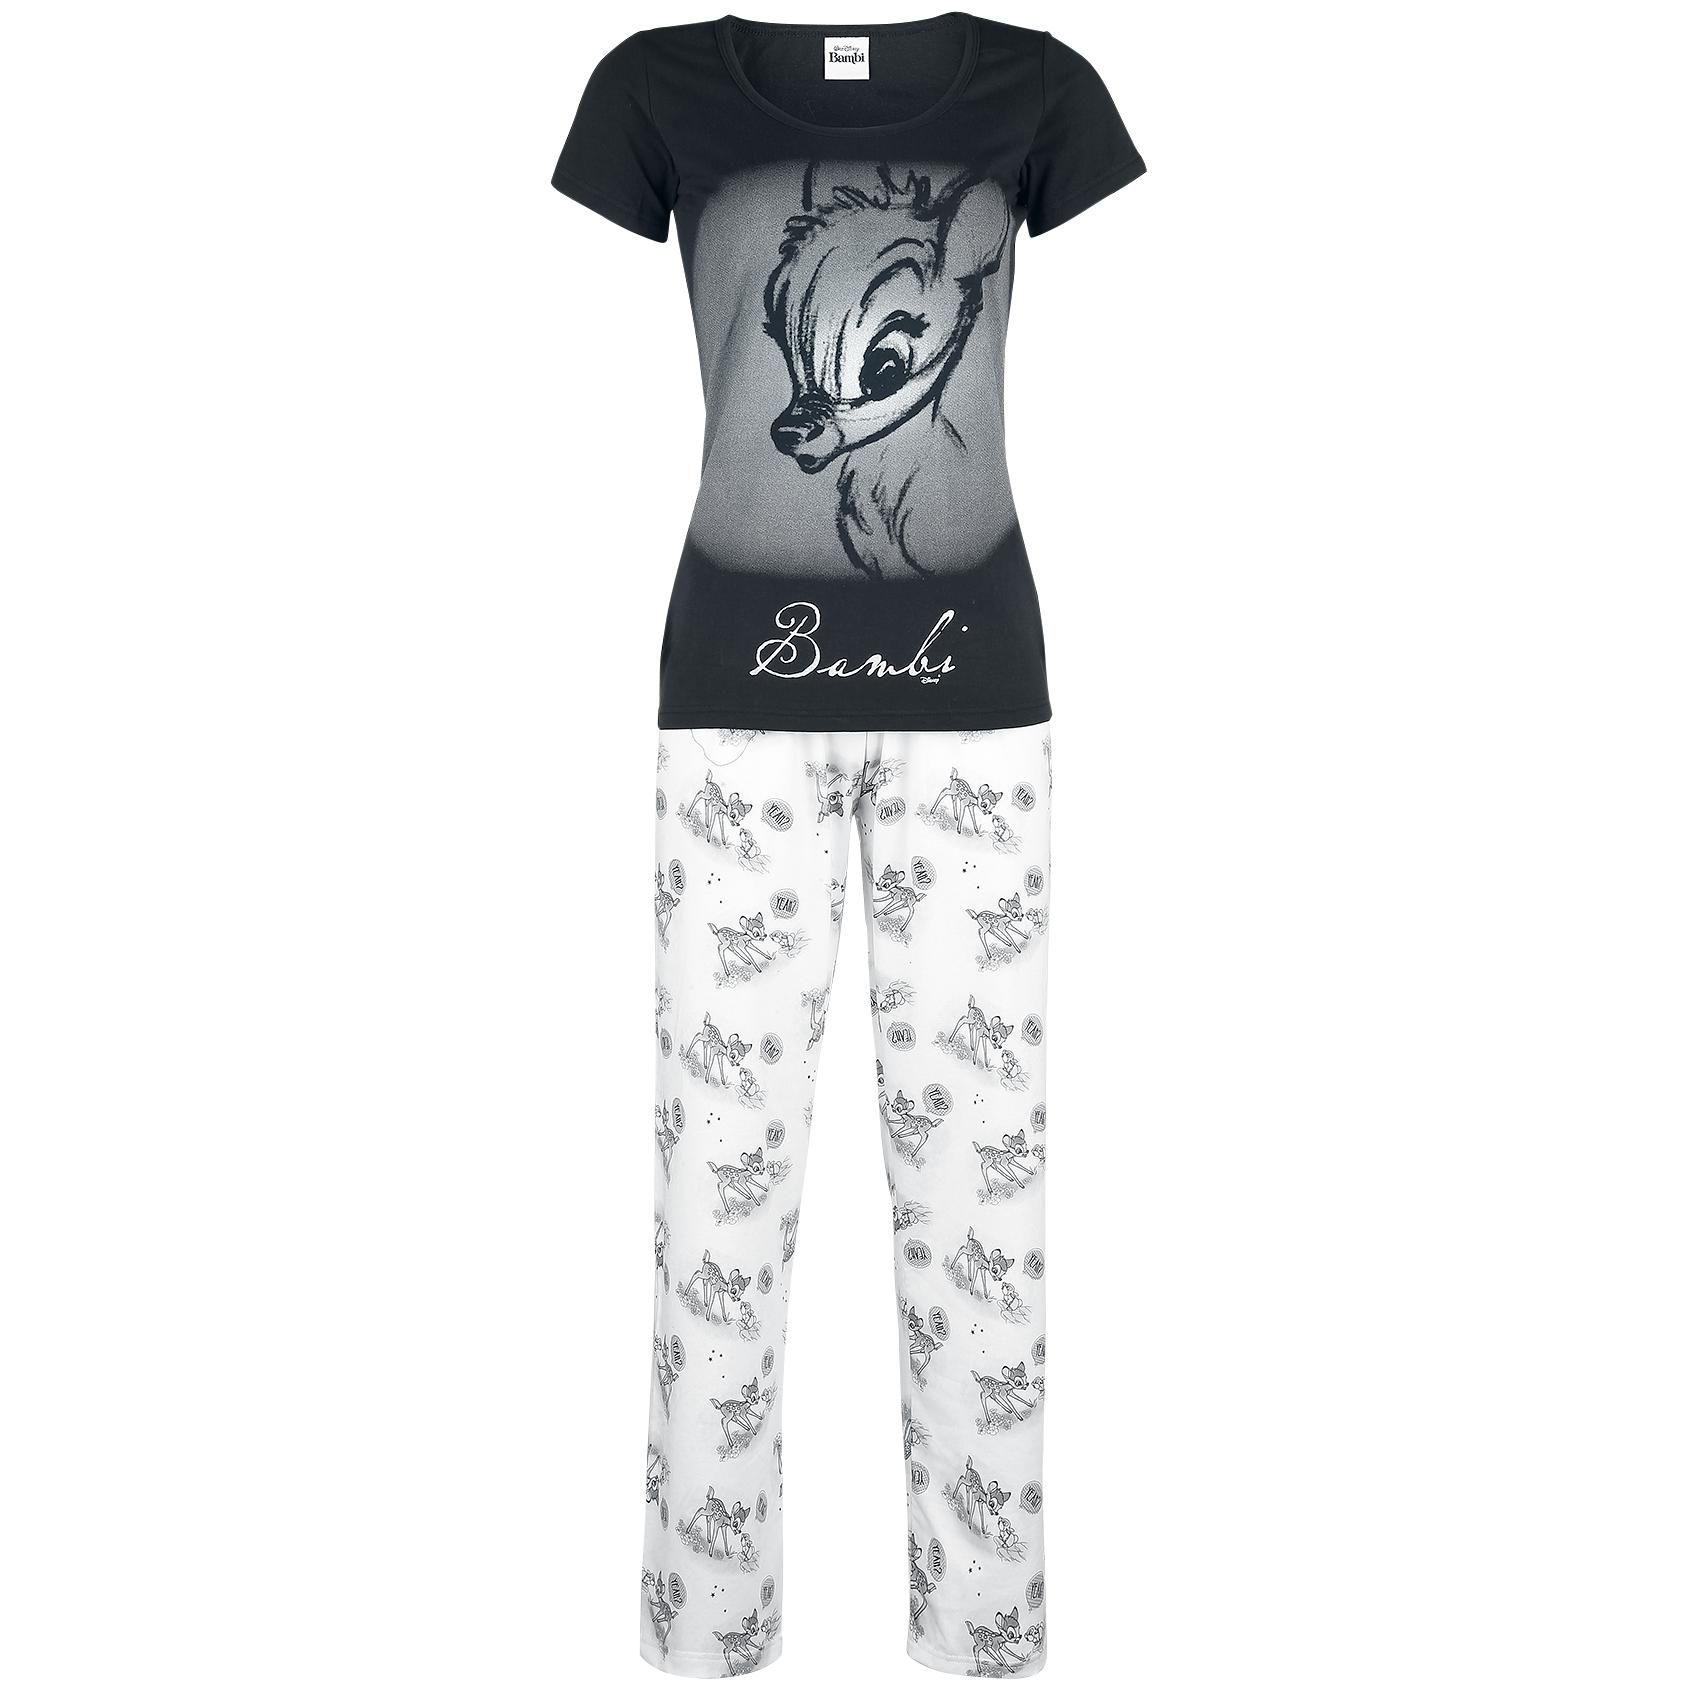 walt disney schlafanzug frauen bambi schwarz wei emp lingerie sleepwear pinterest. Black Bedroom Furniture Sets. Home Design Ideas